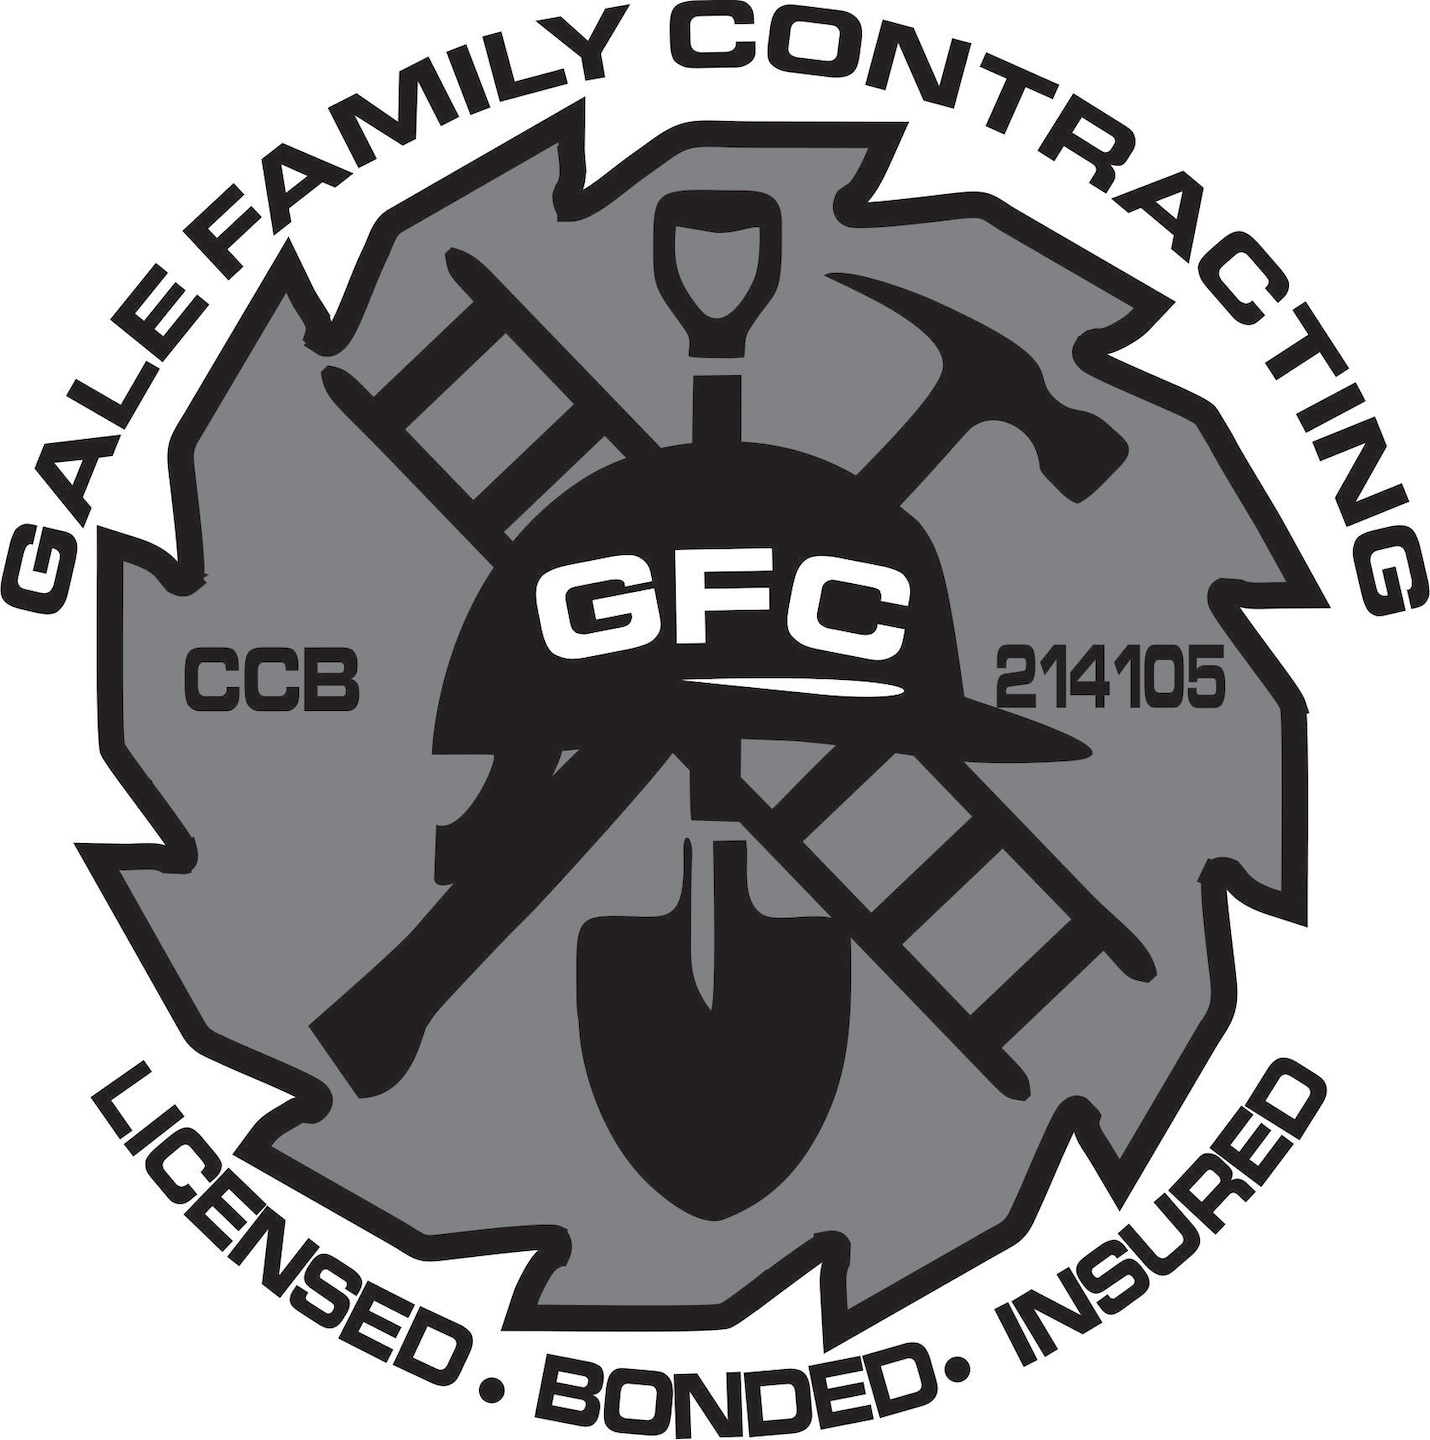 Gale Family Contracting CCB 214105